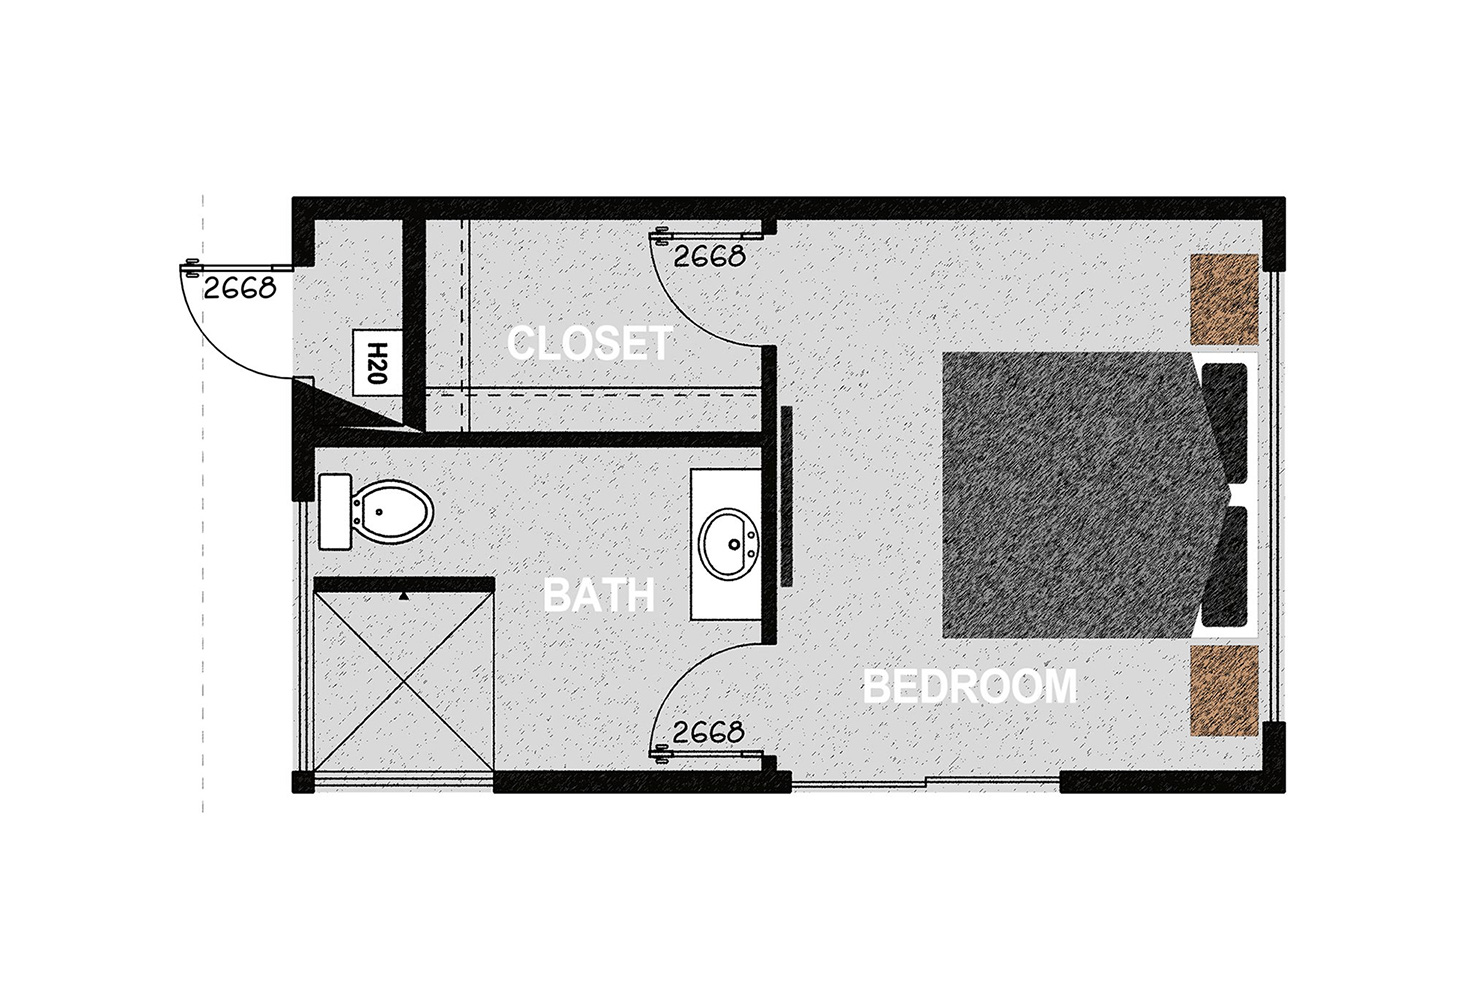 HM288 - The home consists of one bedroom, one walk in closet, an exterior mechanical room, and one bathroom. It offers 288 square feet of conditioned living space. Exterior dimensions are approximately 22' x 13'.